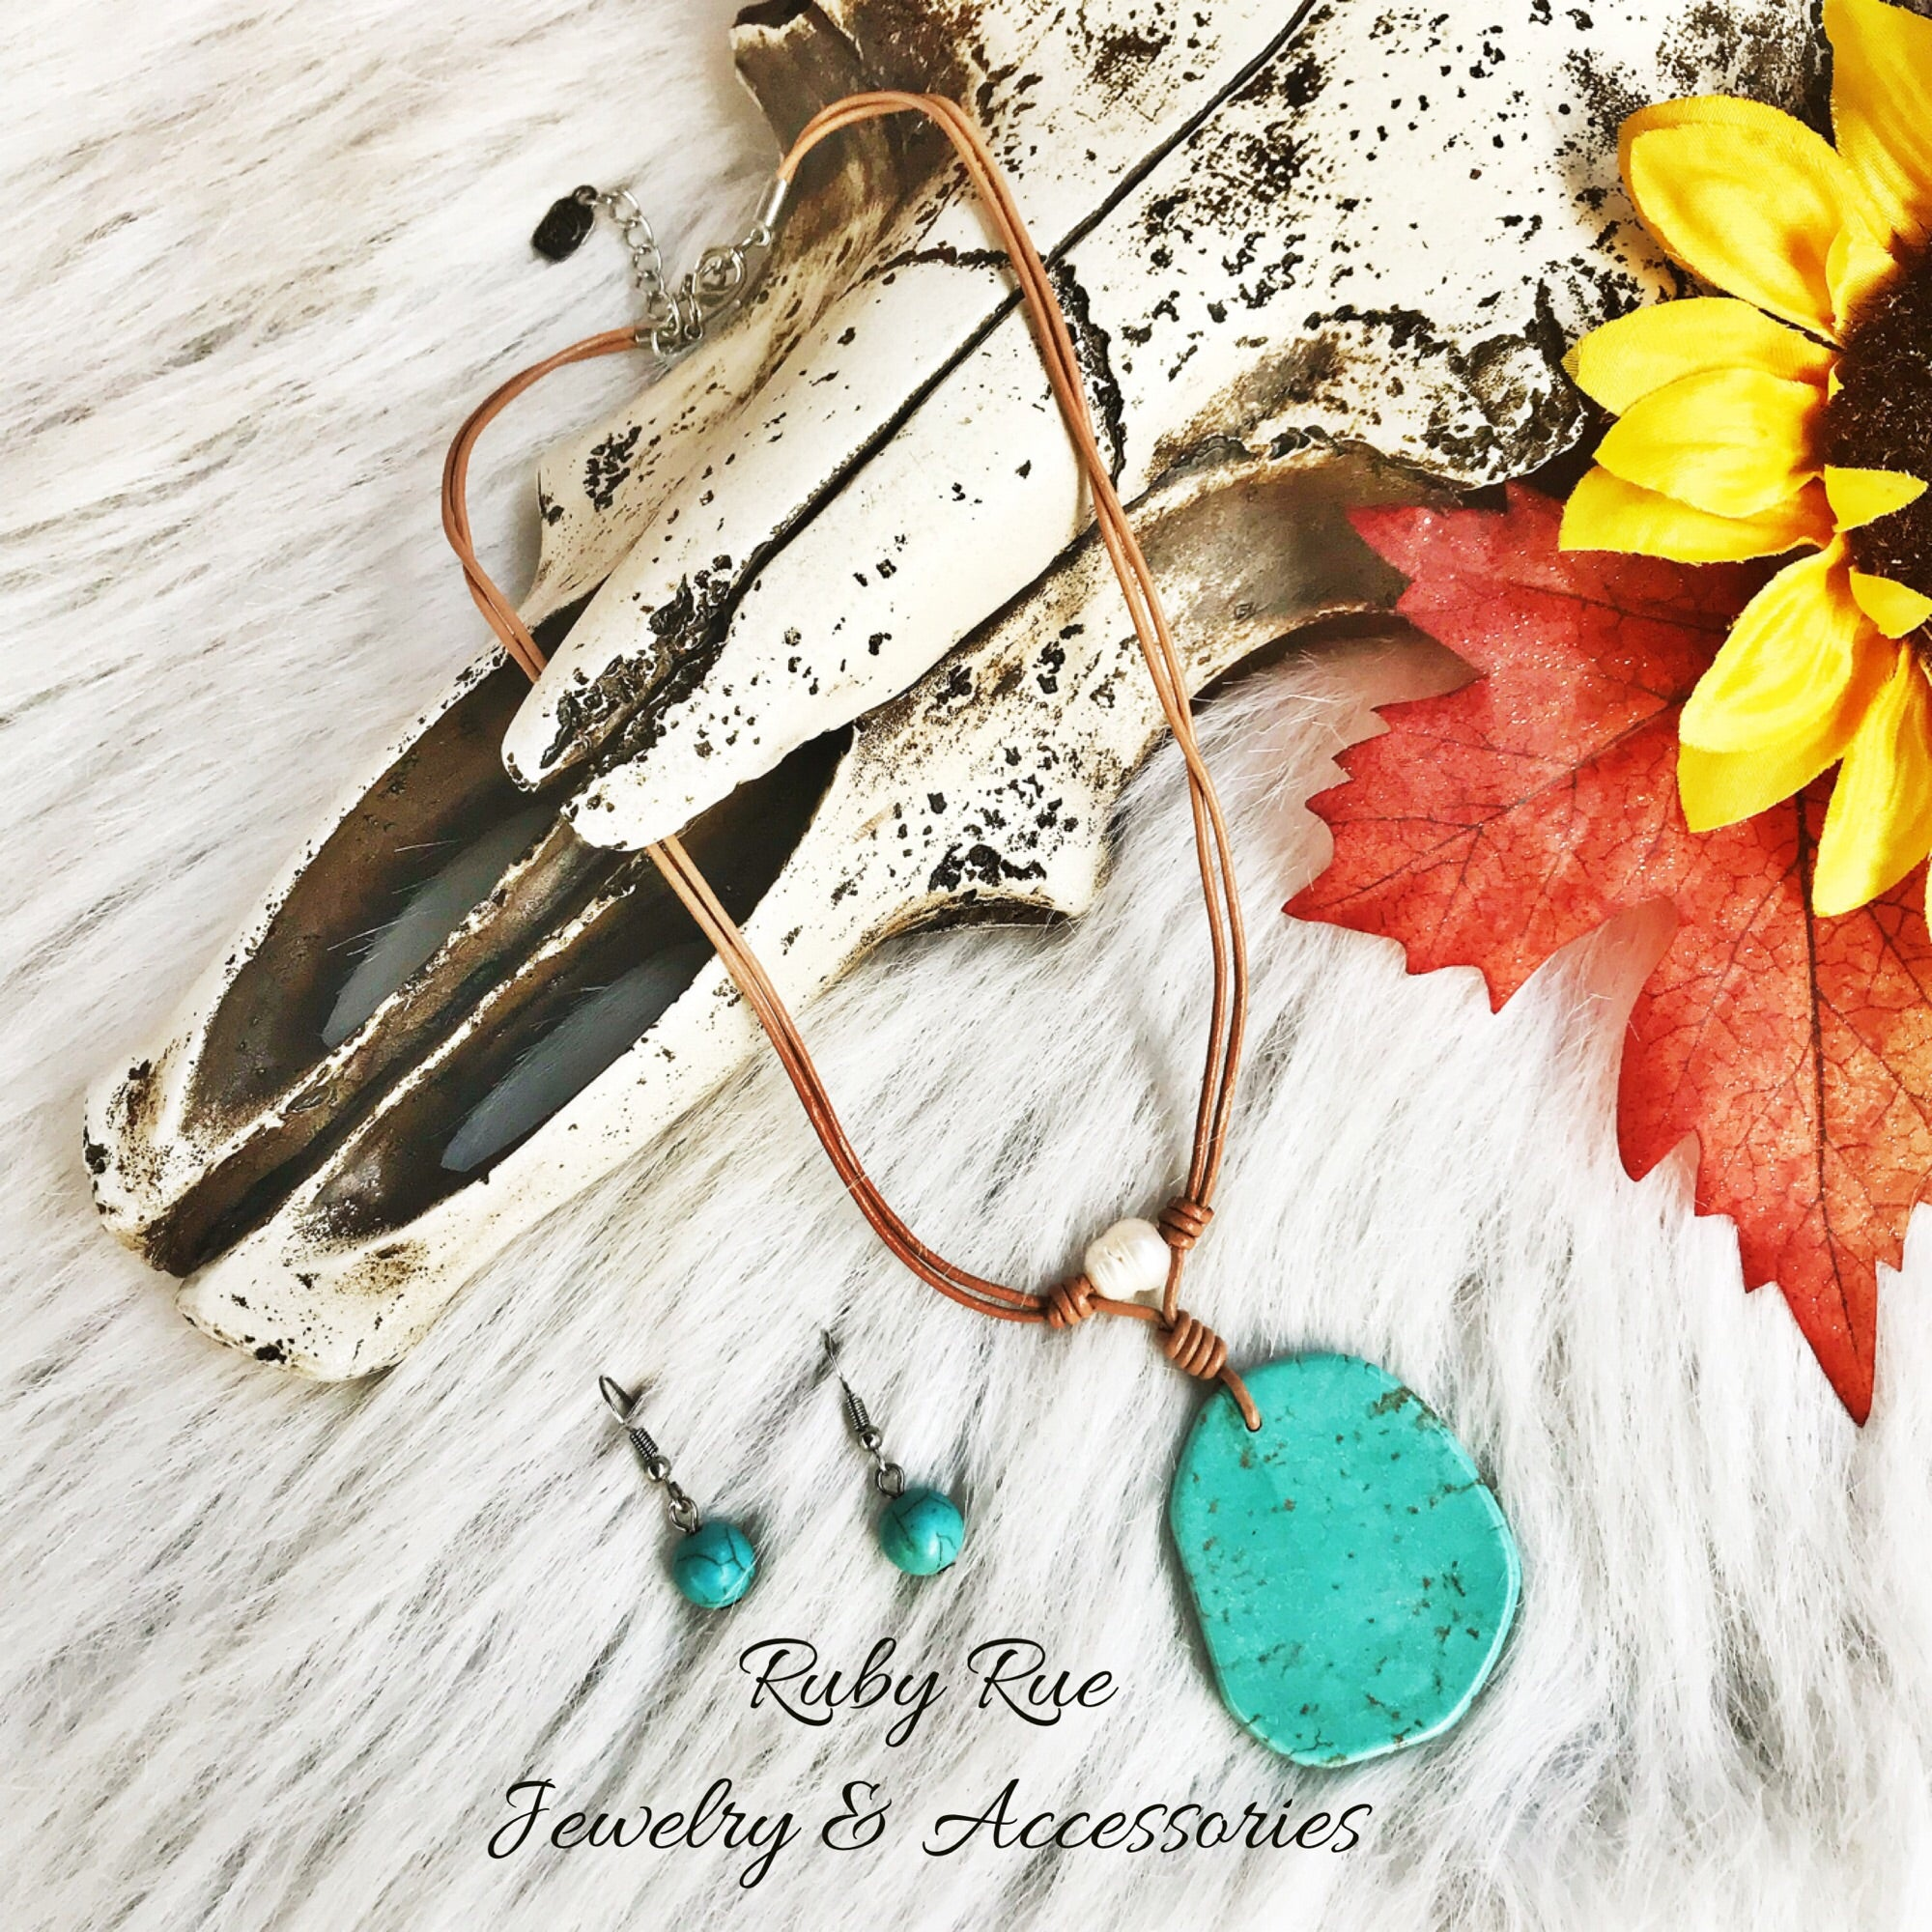 Turquoise Choker - Ruby Rue Jewelry & Accessories